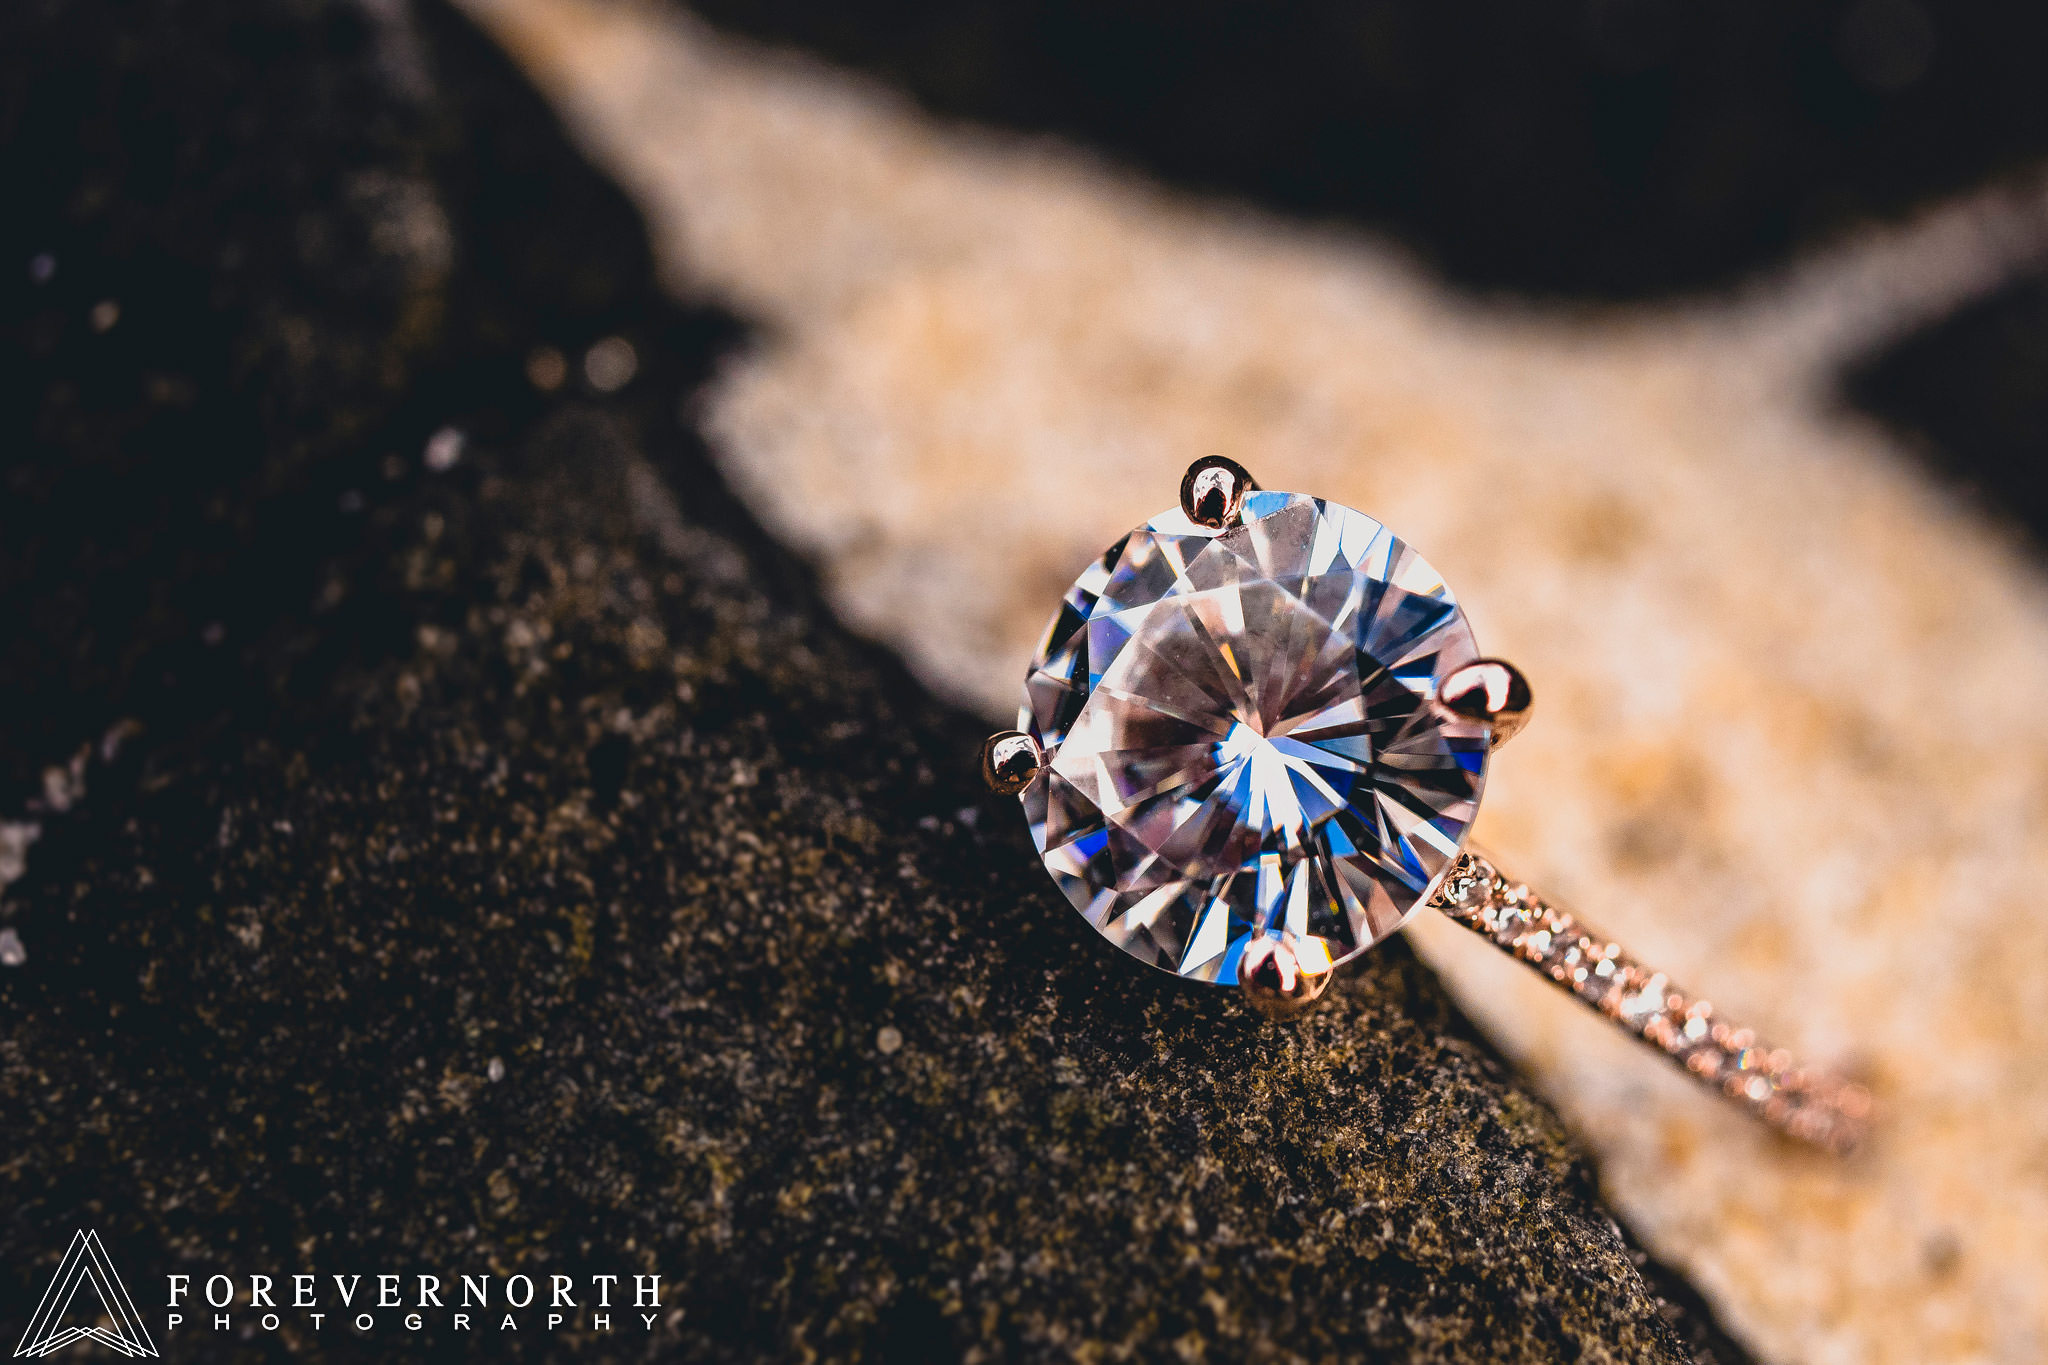 Schall-Forever-North-Photography-Proposal-Engagement-Photographer-Manasquan-Beach-37.JPG